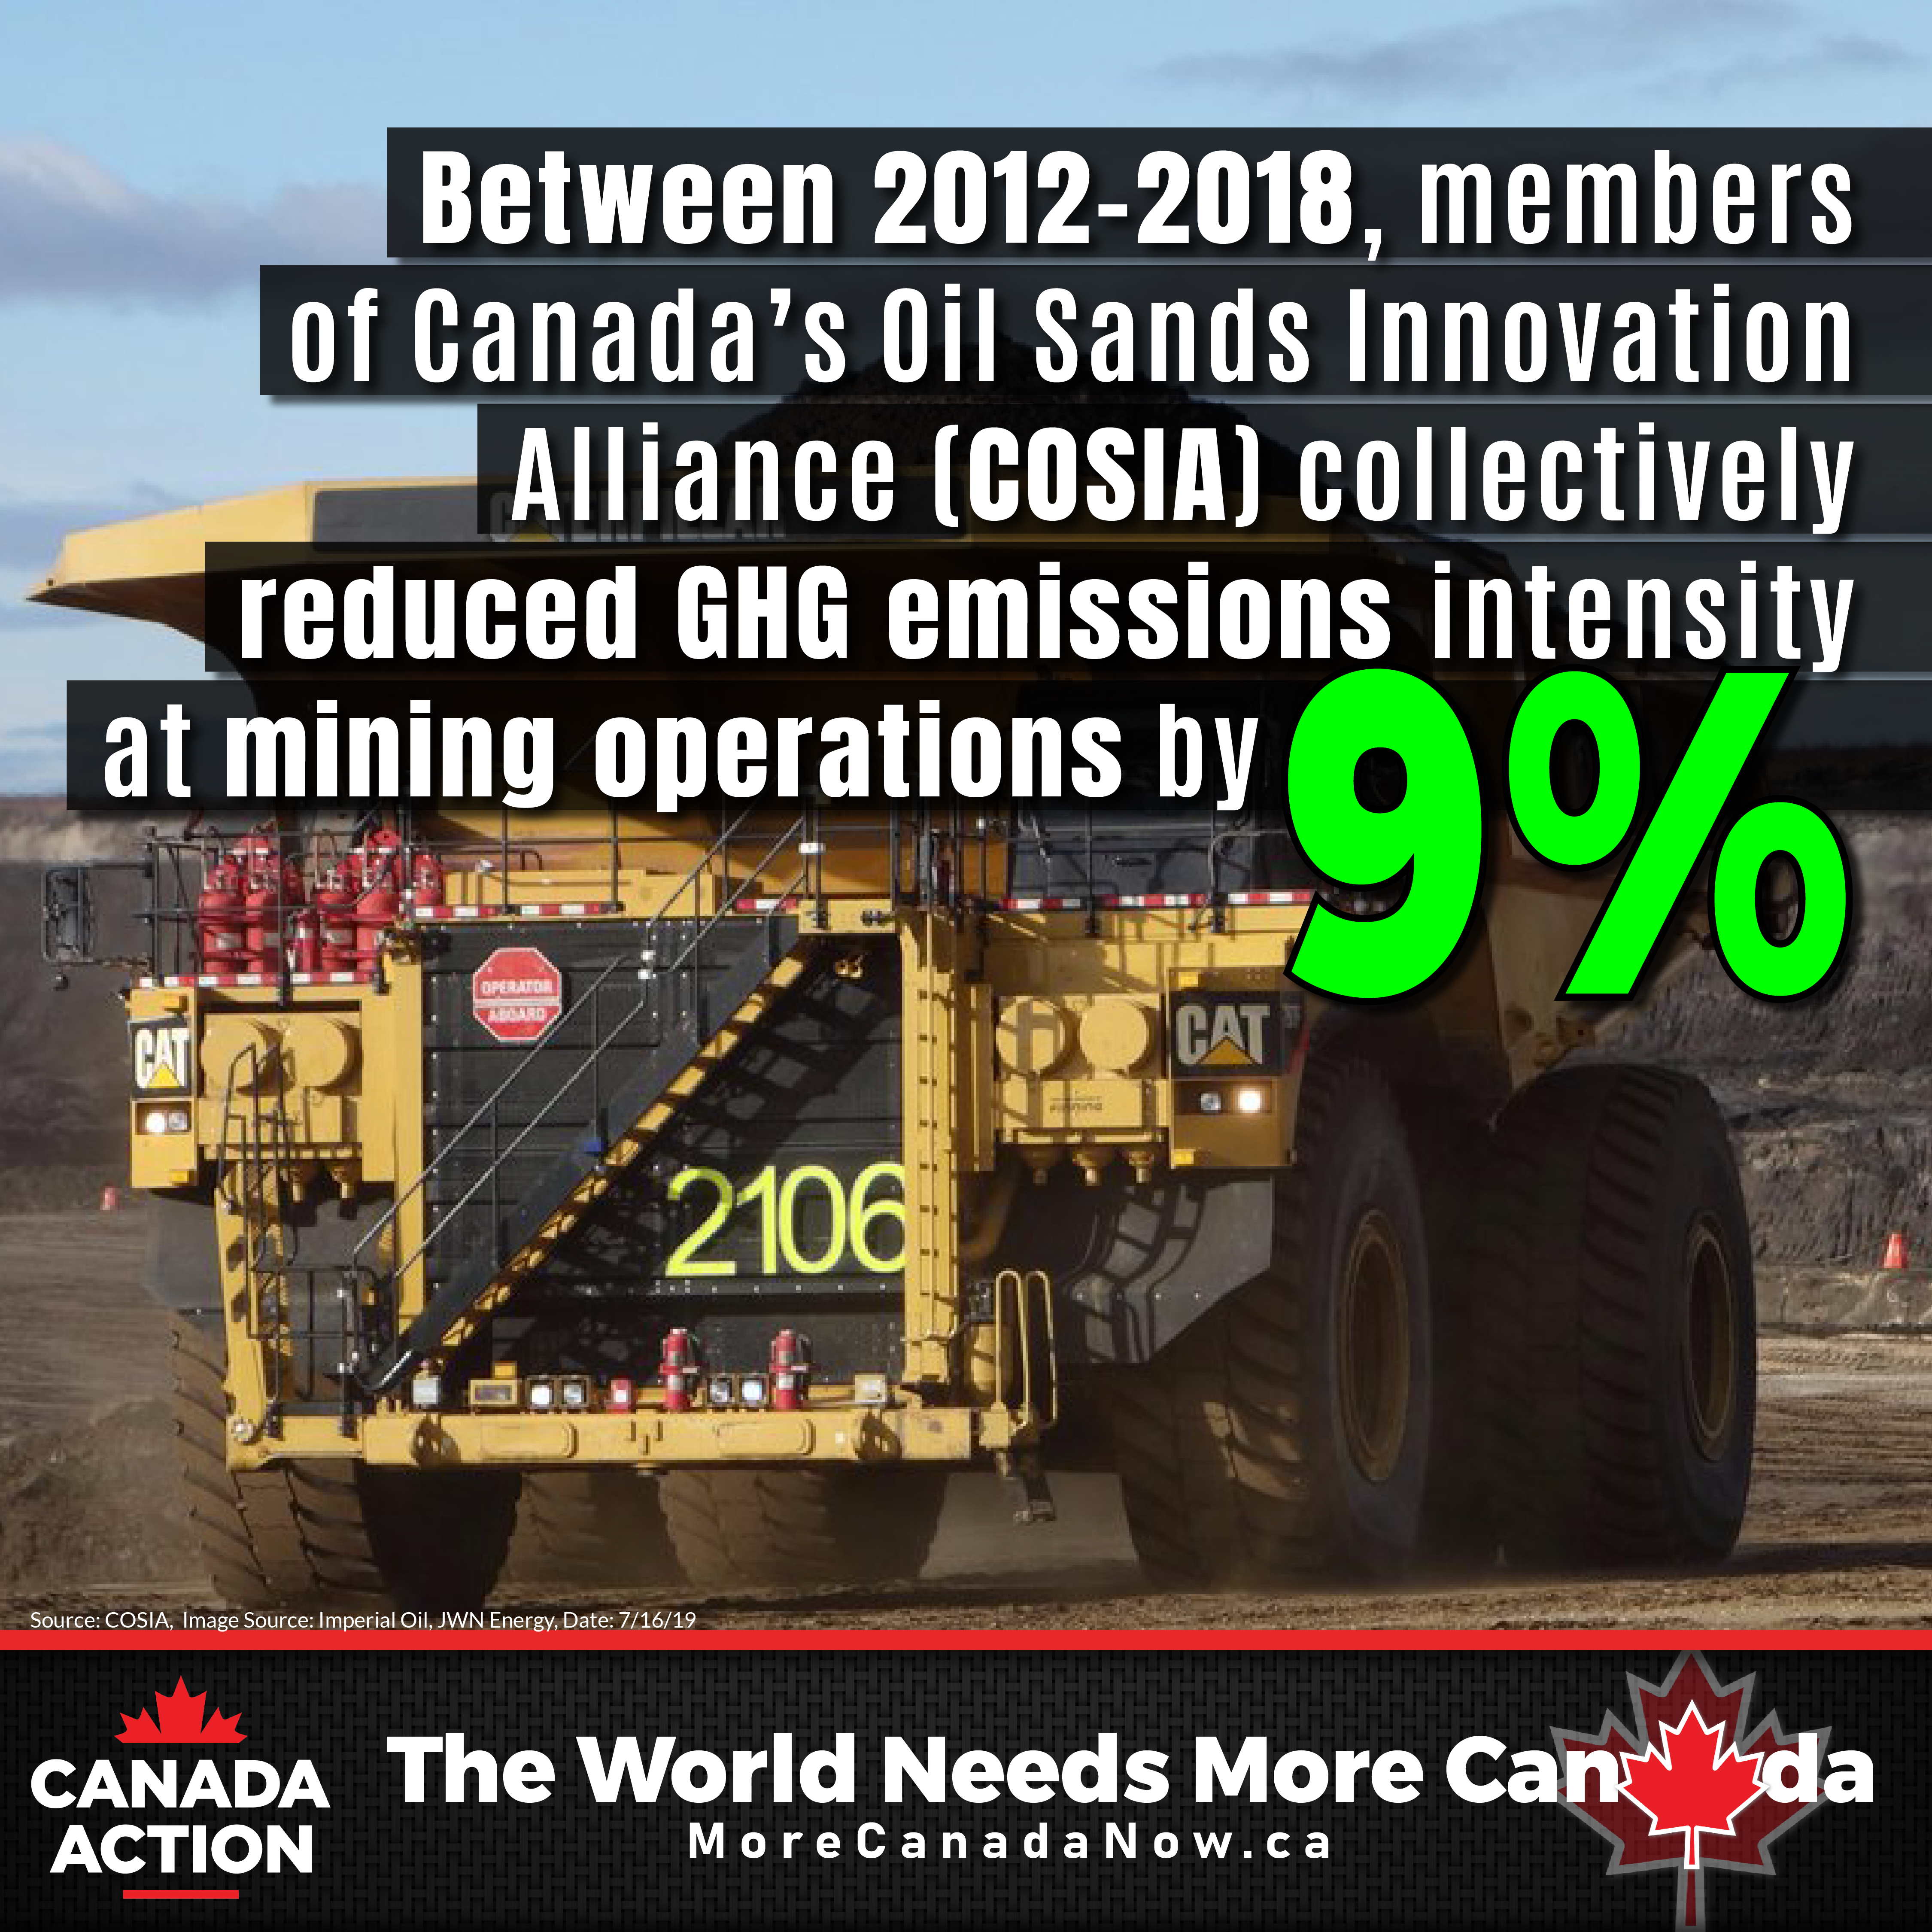 COSIA - reducing ghg emissions intensity at mining operations by 9% between 2012-2018